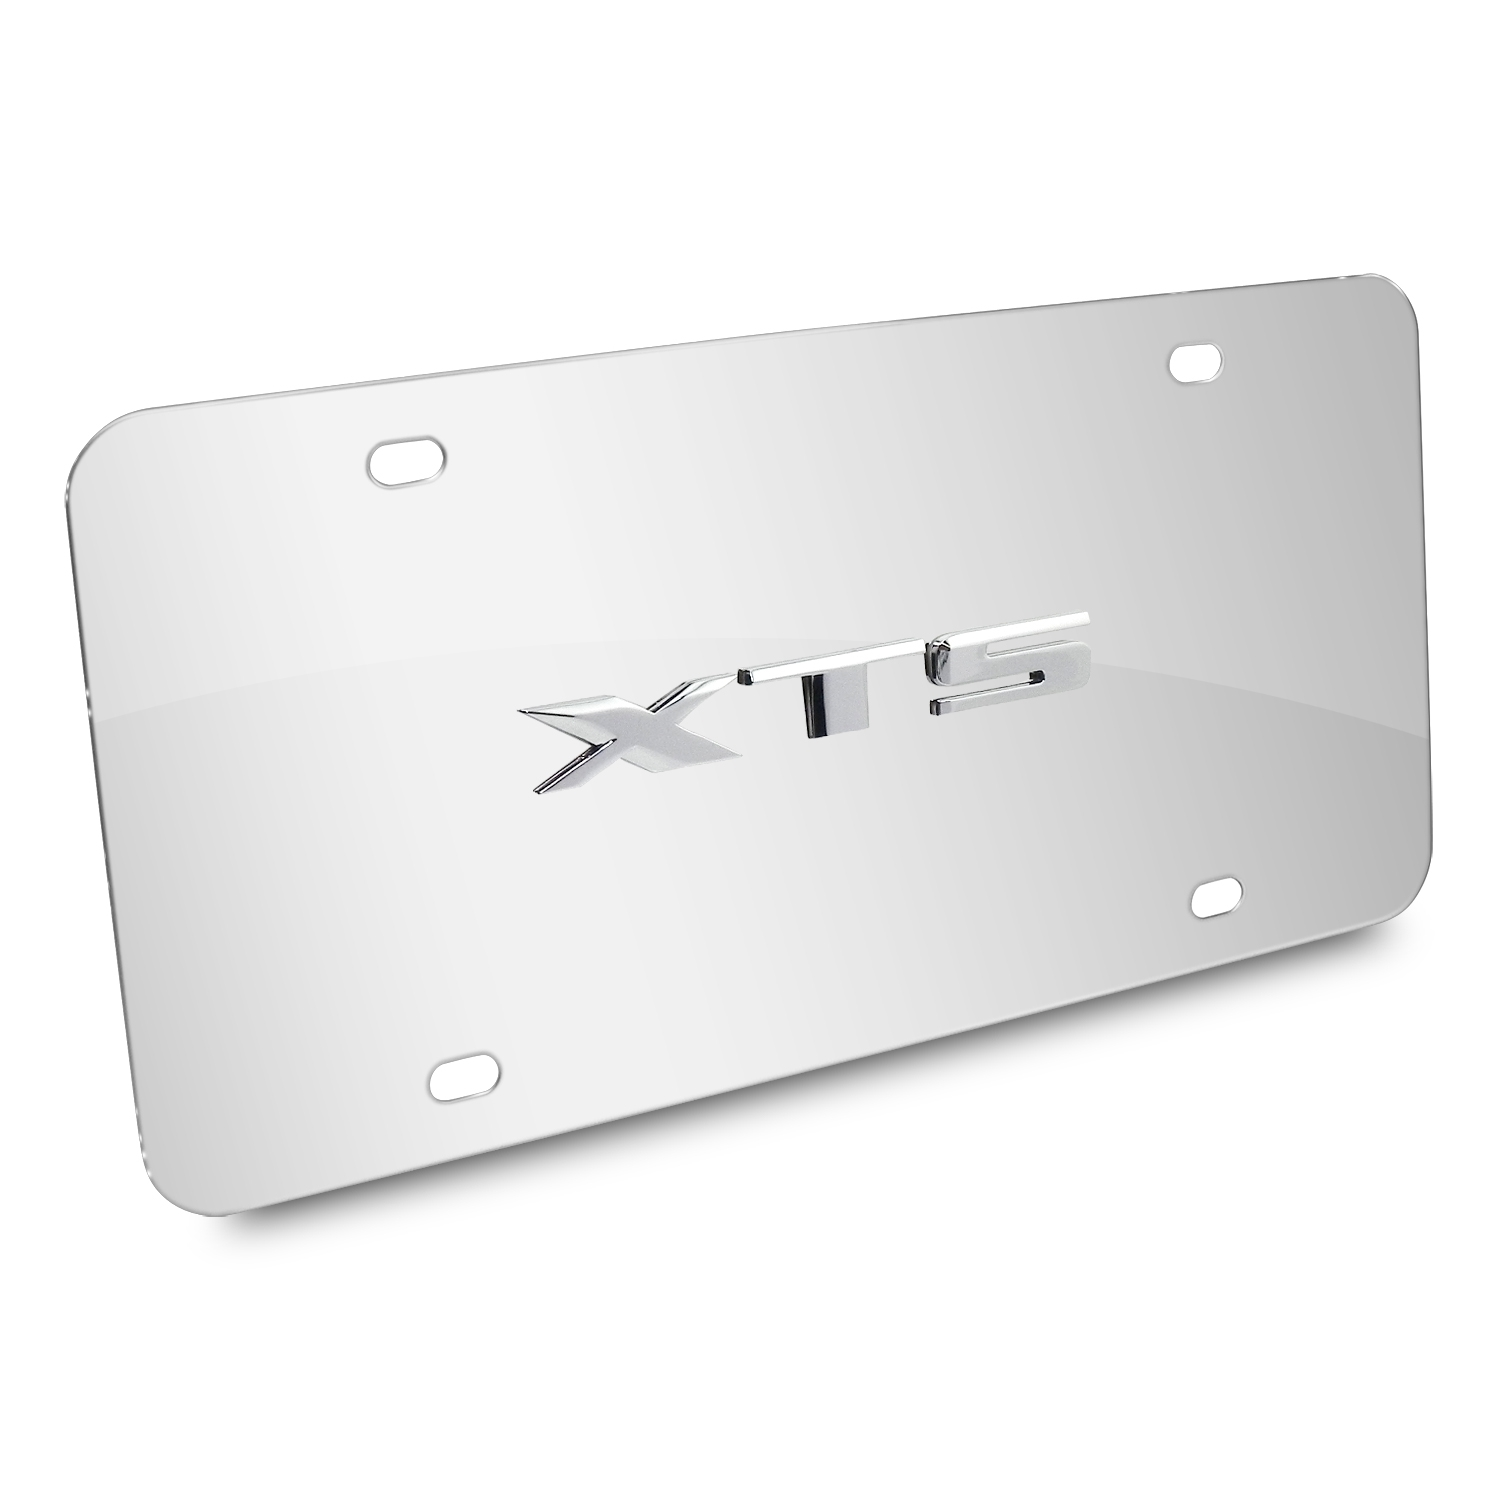 Cadillac XTS Name 3D Logo Chrome Stainless Steel License Plate